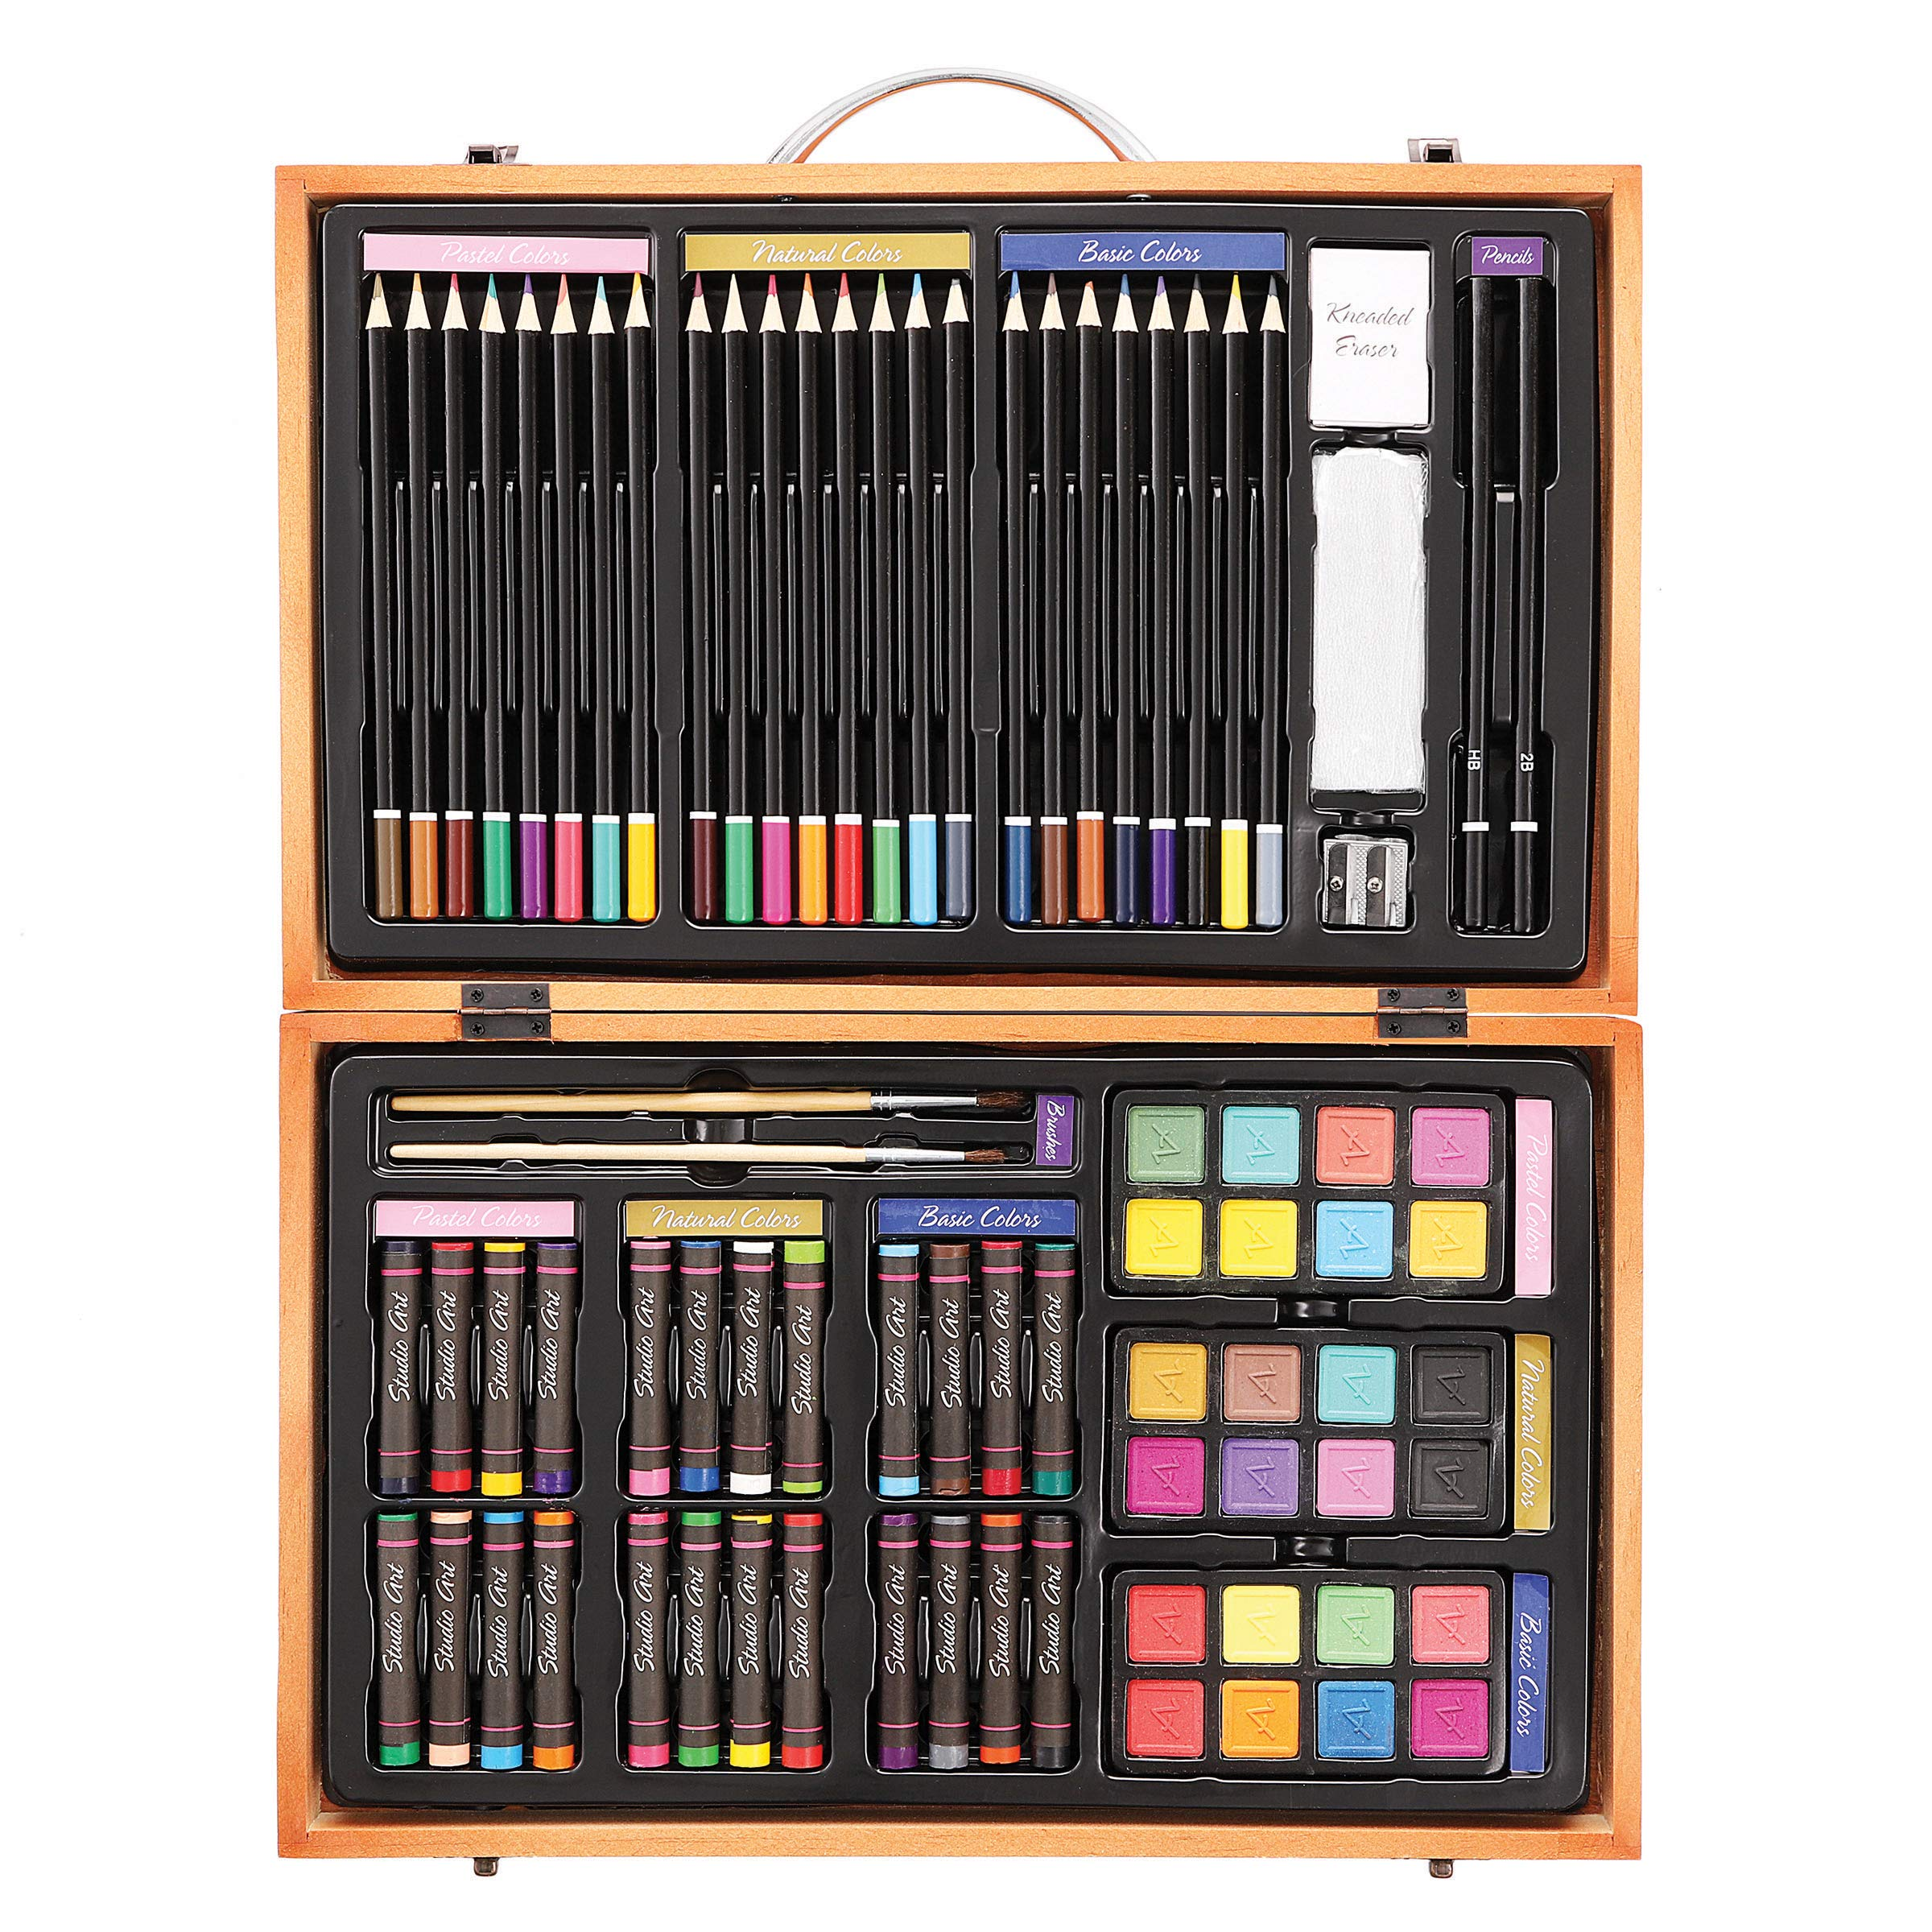 Darice 80-Piece Deluxe Art Set - Art Supplies for Drawing, Painting and More in a Compact, Portable Case - Makes a Great Gift for Beginner and Serious Artists by Darice